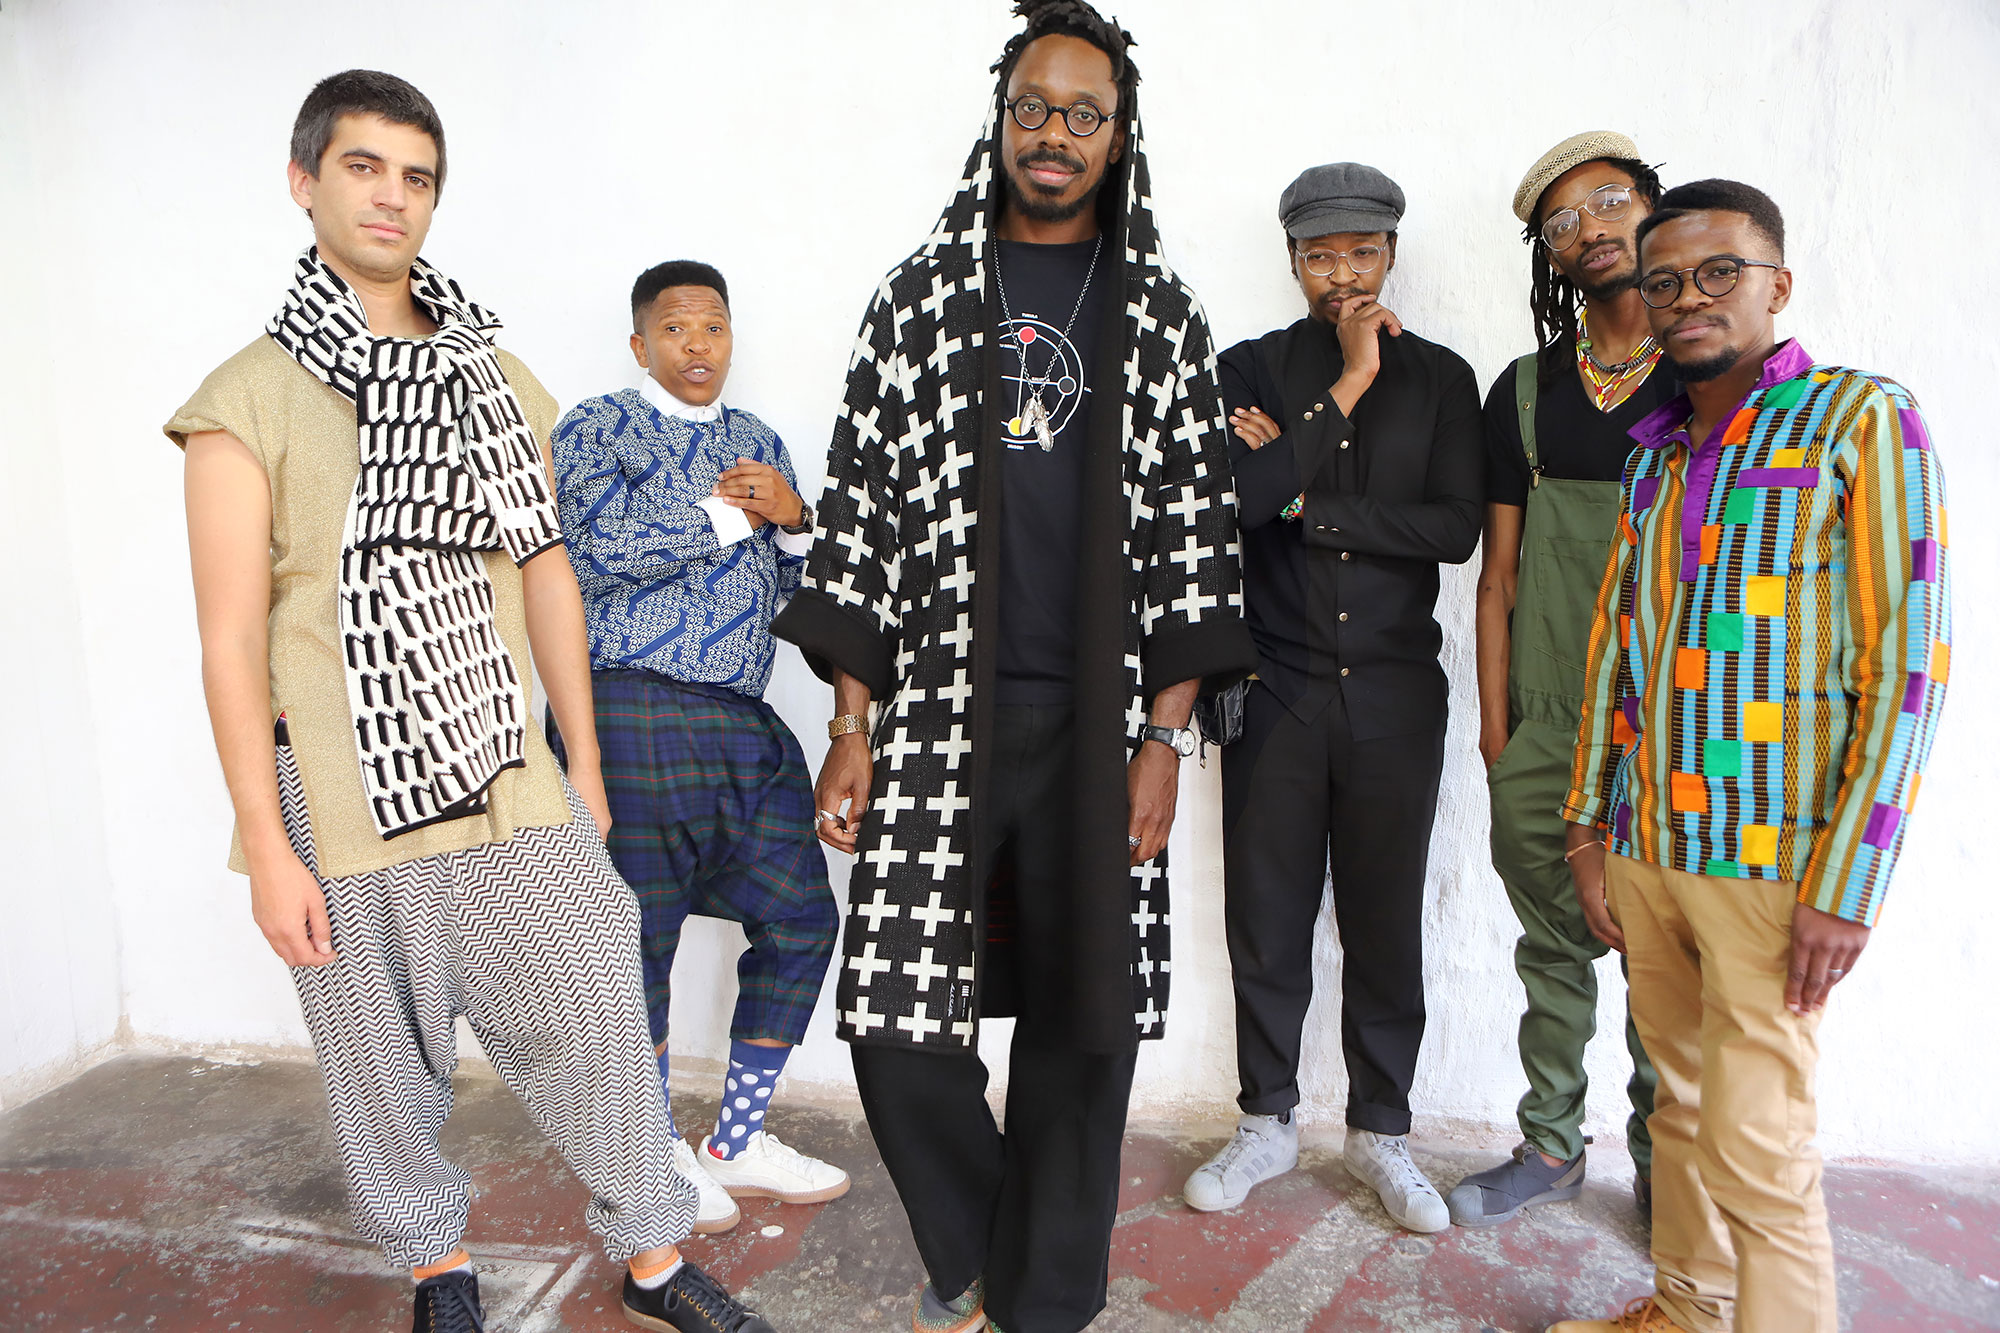 SHABAKA AND THE ANCESTORS picture